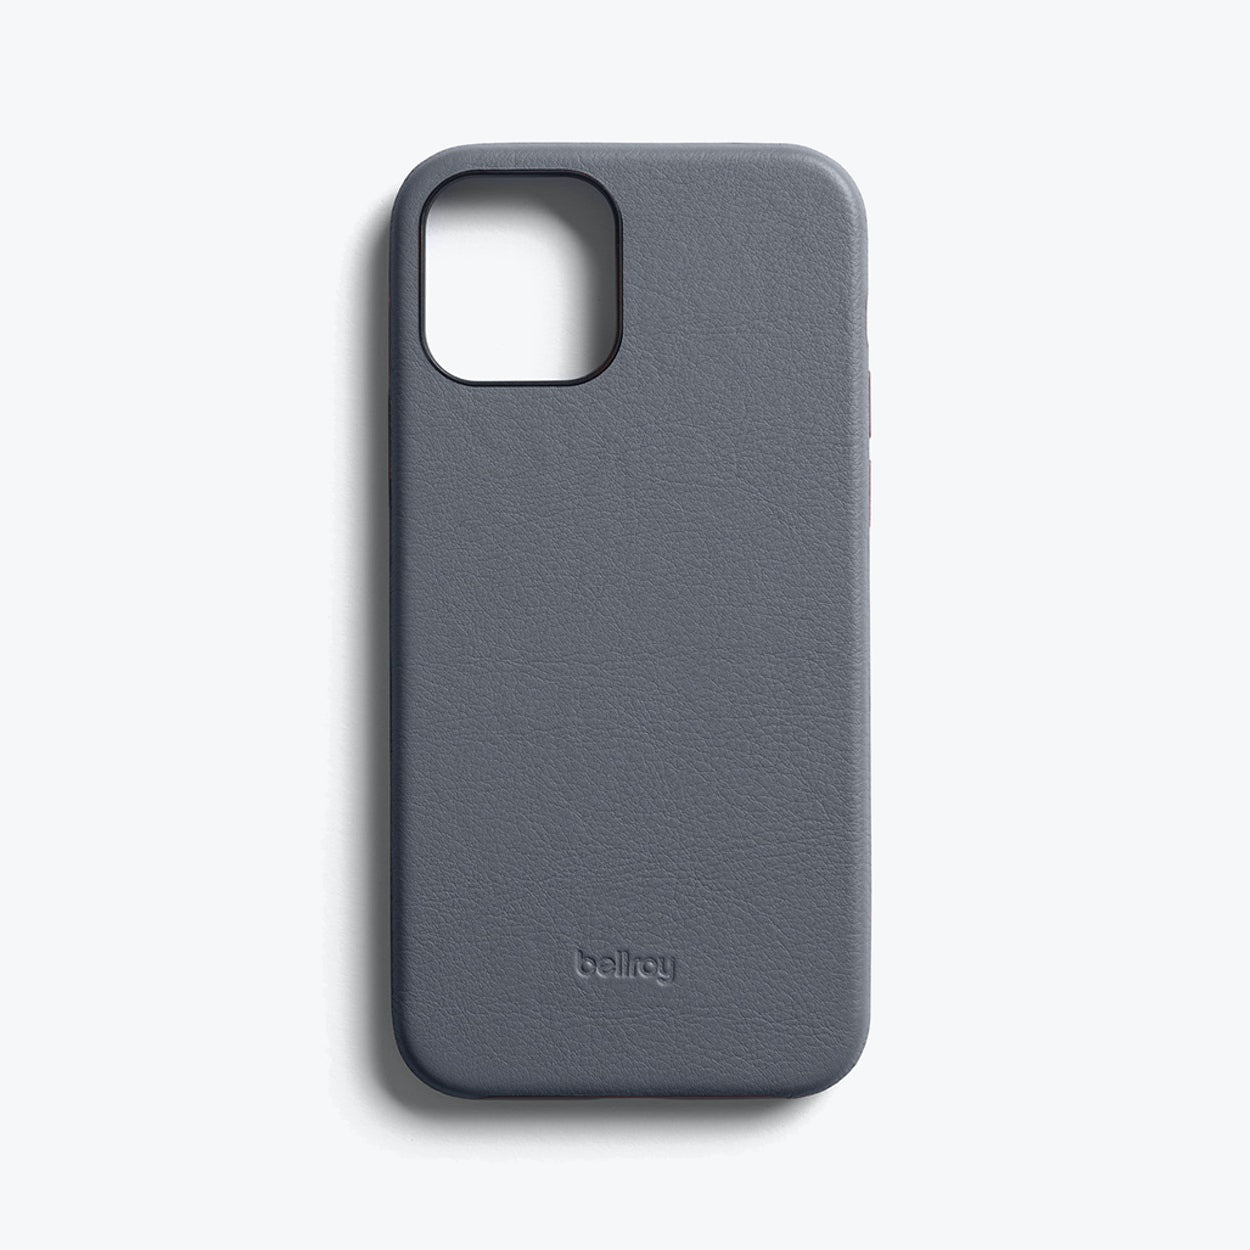 Bellroy Slim Genuine Leather Case For iPhone iPhone 12 mini - GRAPHITE